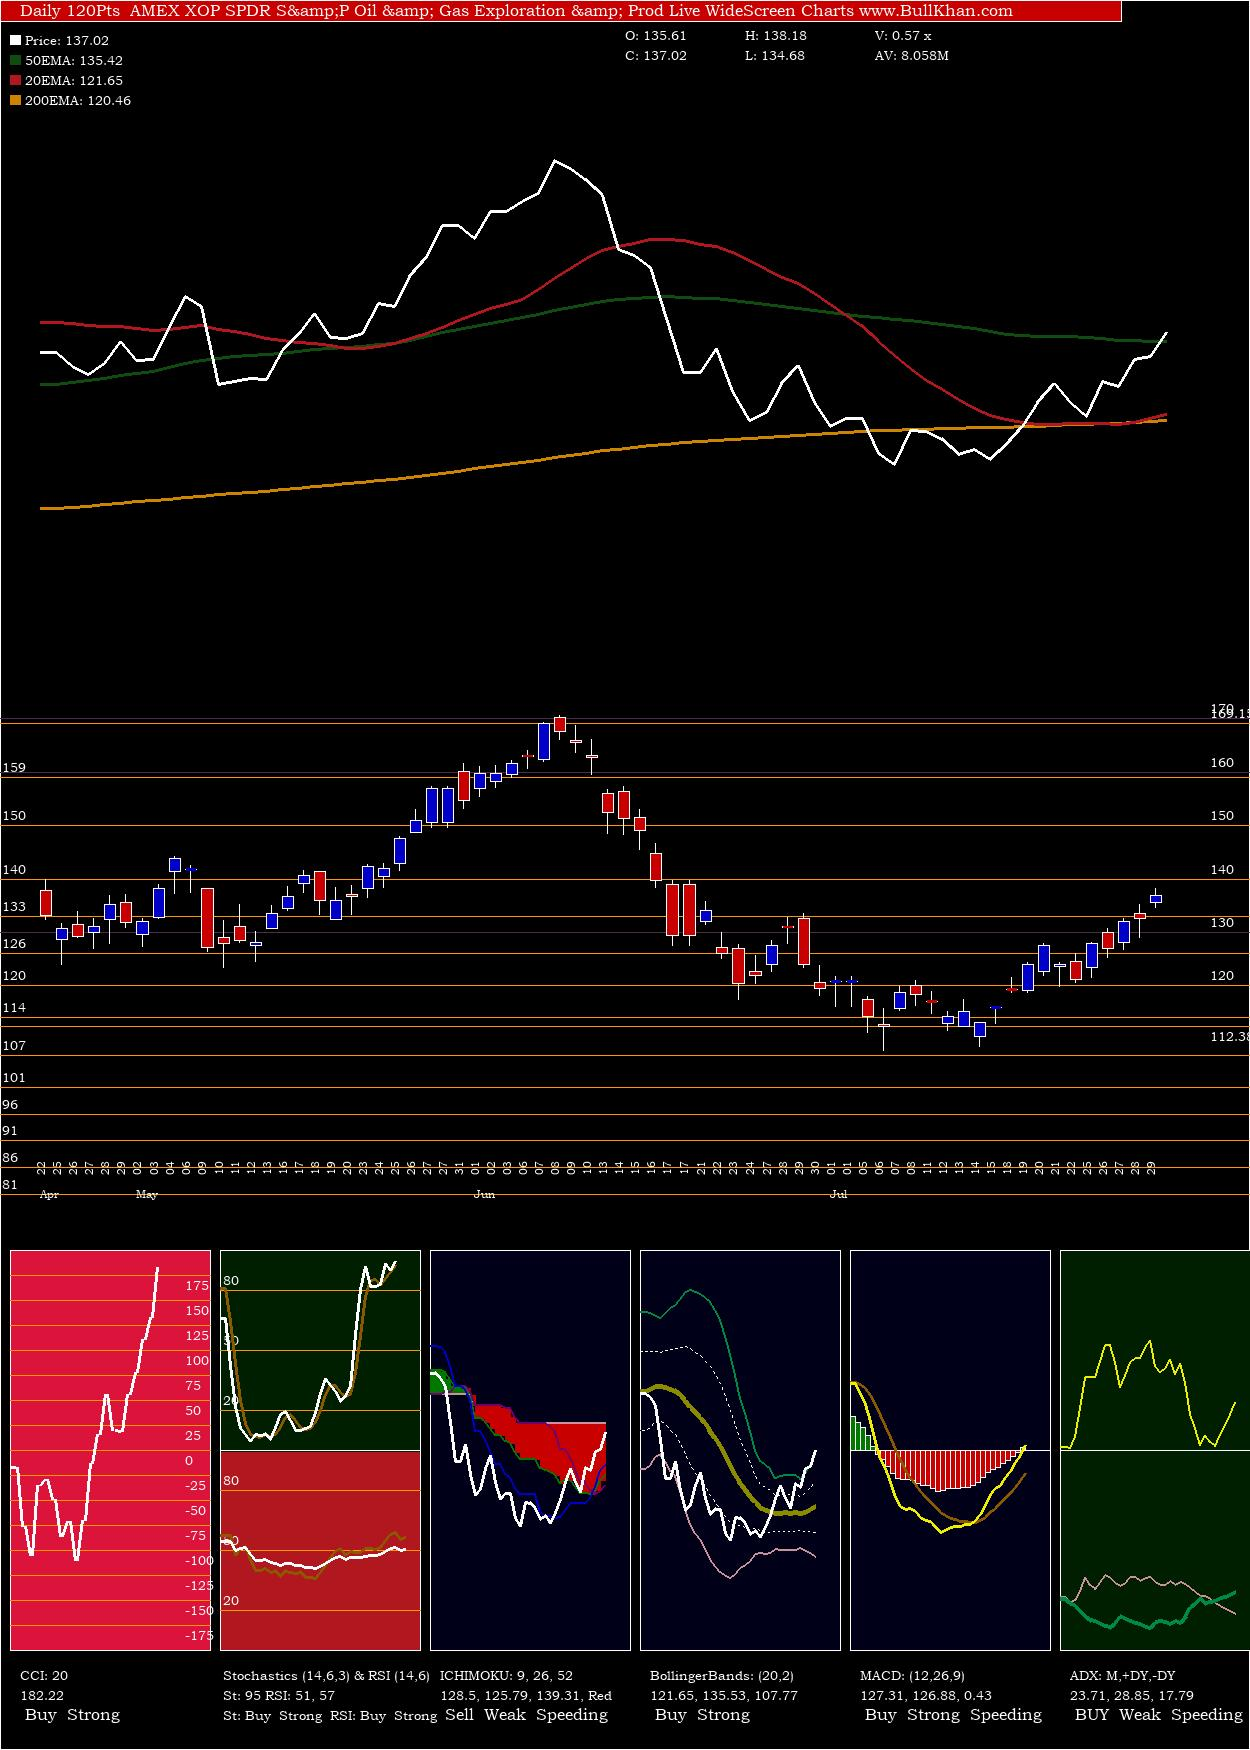 SPDR S&P Oil & Gas Exploration & Prod charts and indicators